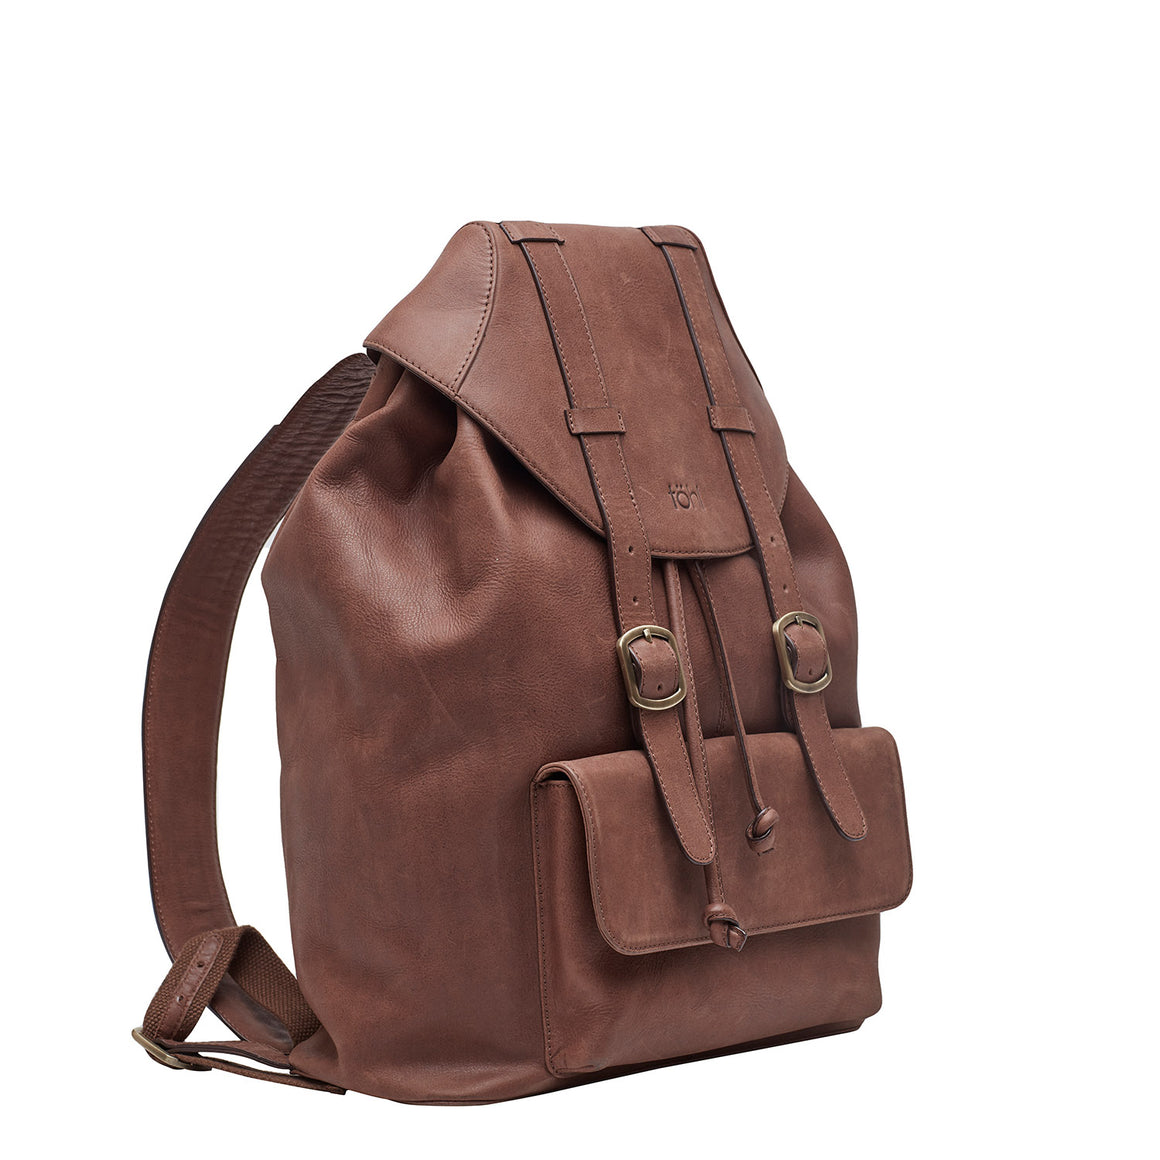 BP 0009 - TOHL MARCO MEN'S BACKPACK - TAN